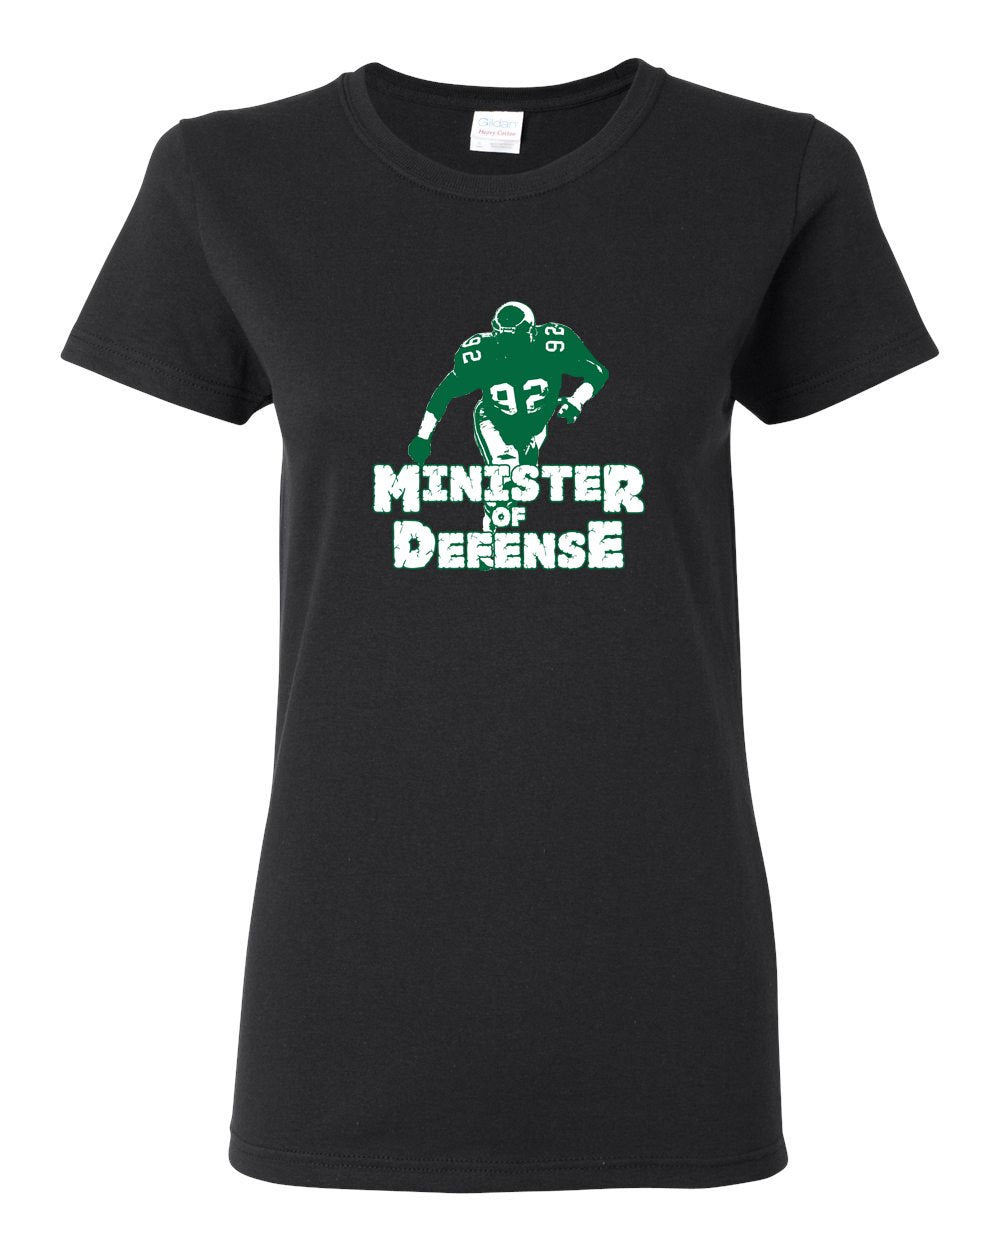 Minister Of Defense LADIES Missy-Fit T-Shirt